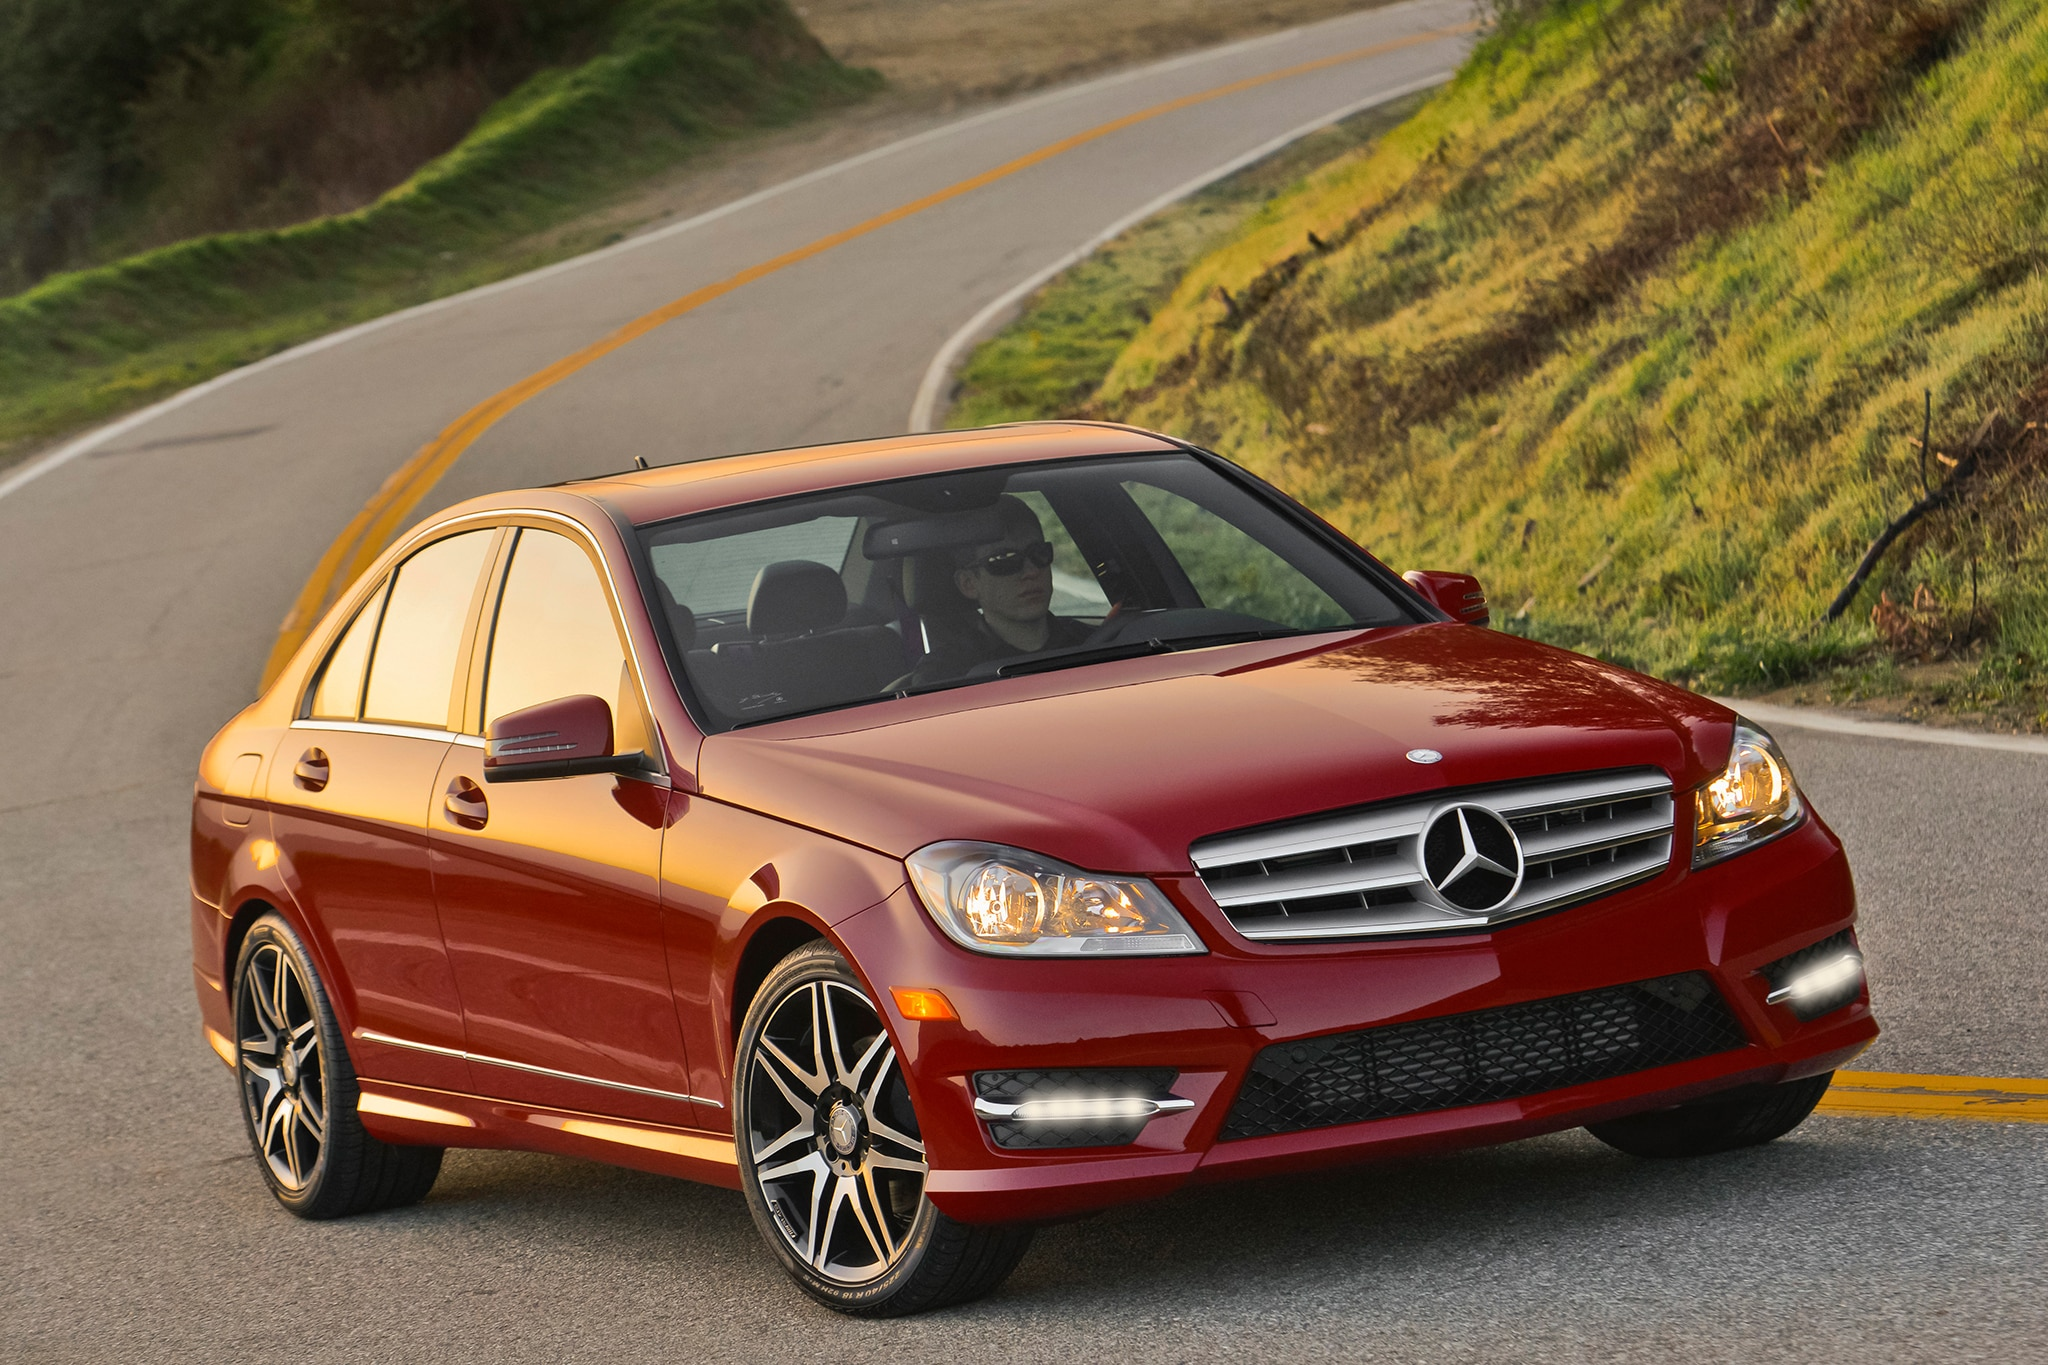 Mercedes benz reveals new 2013 c class sport package with for 2013 mercedes benz c250 sport